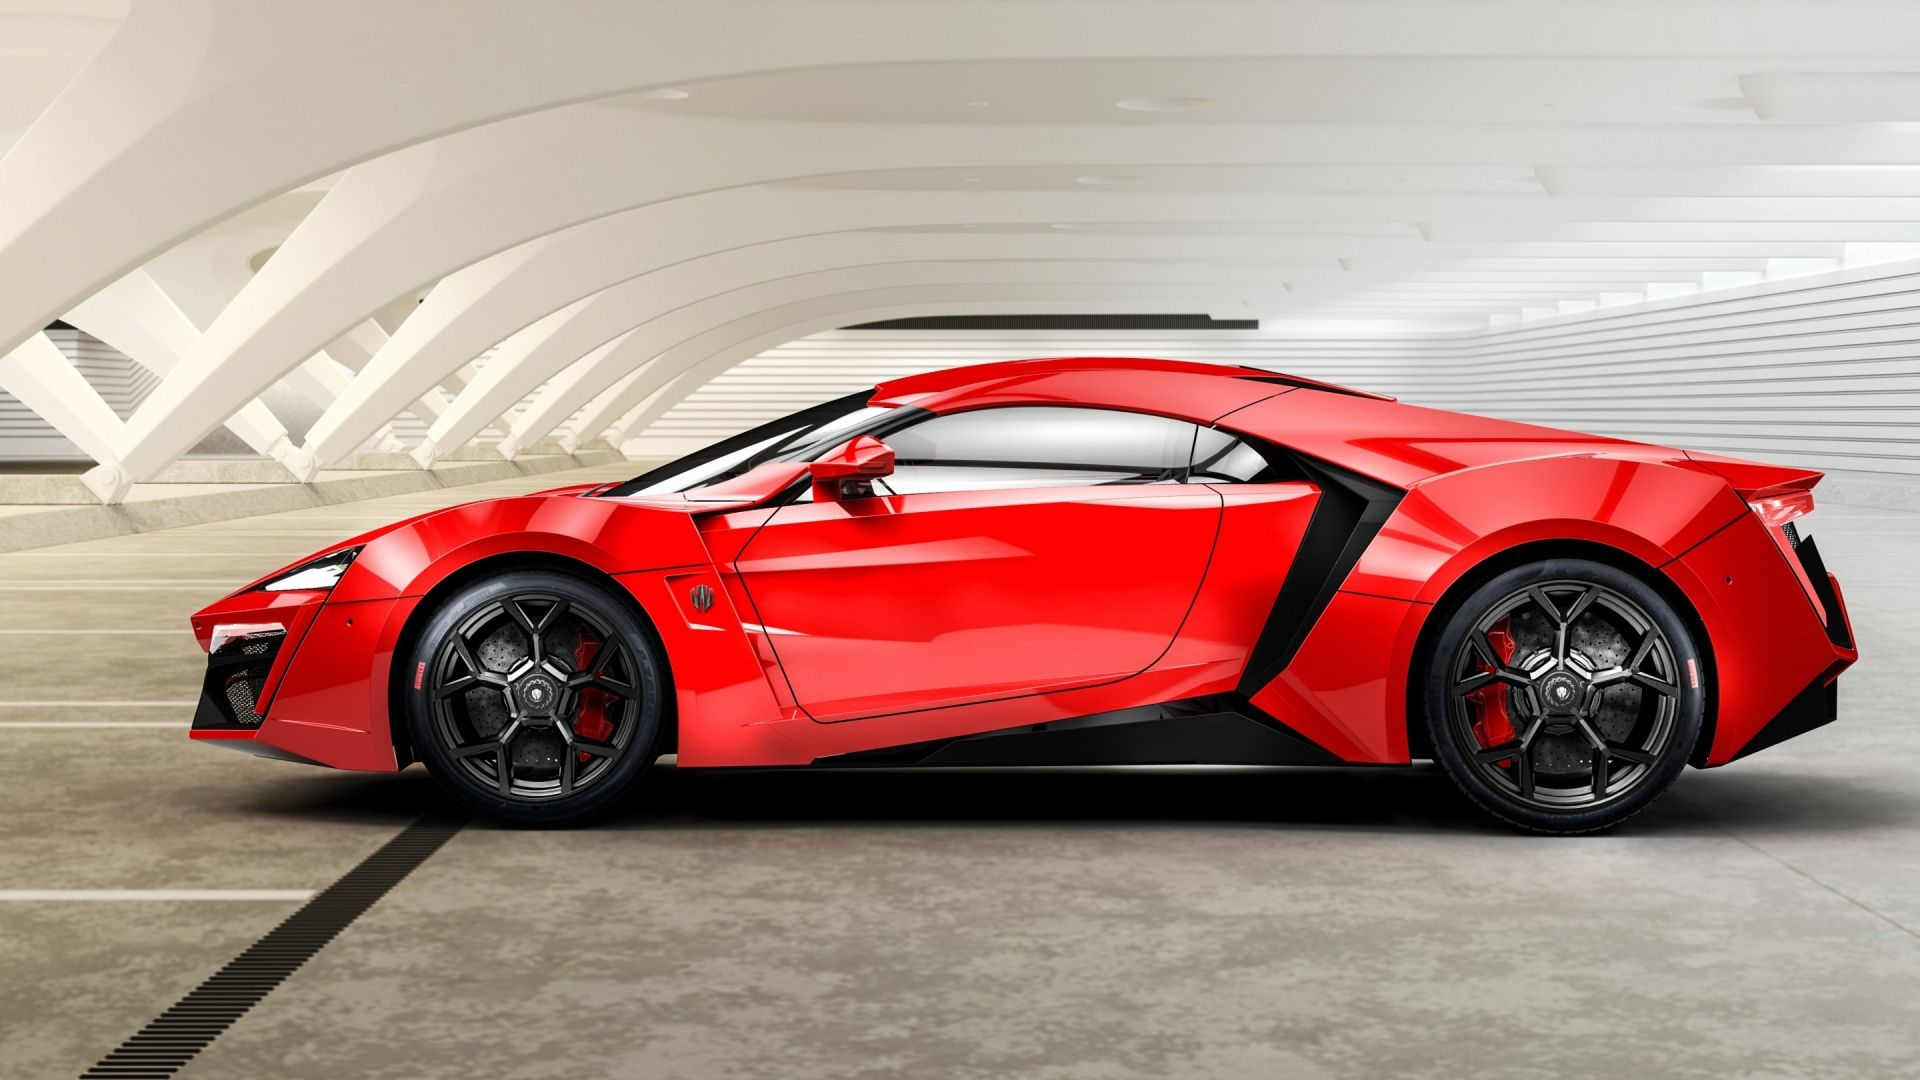 Download Wallpaper 1920x1080 Lykan Hypersport W Motors Red Lykan Hypersport Super Luxury Cars Sports Car